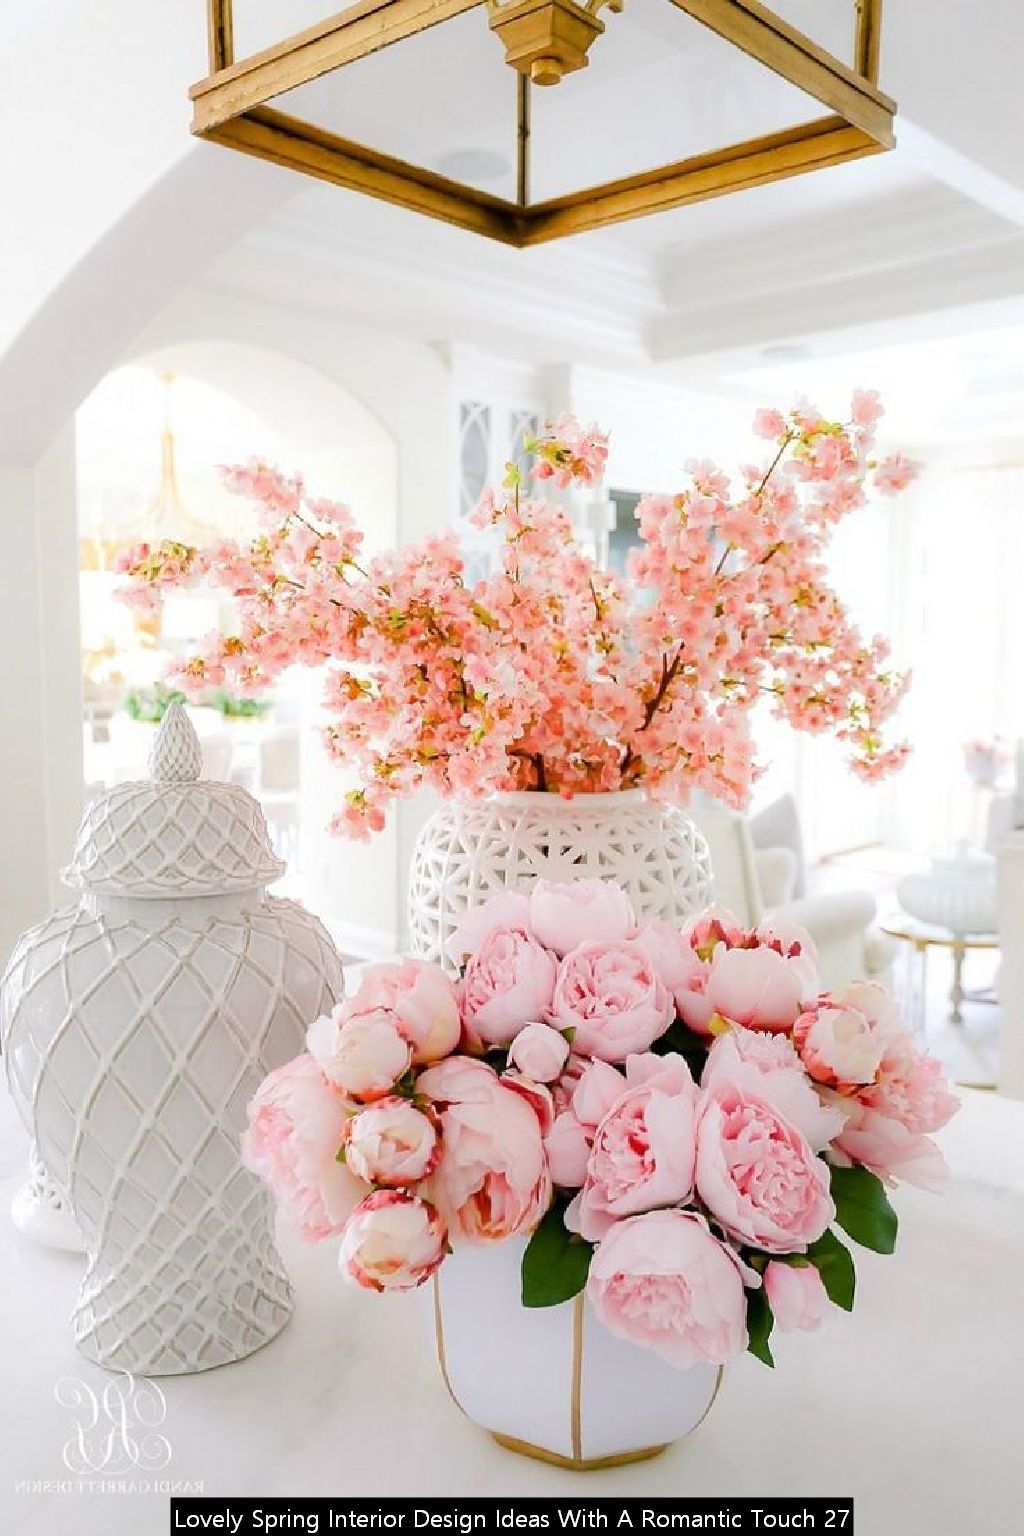 Lovely Spring Interior Design Ideas With A Romantic Touch 27